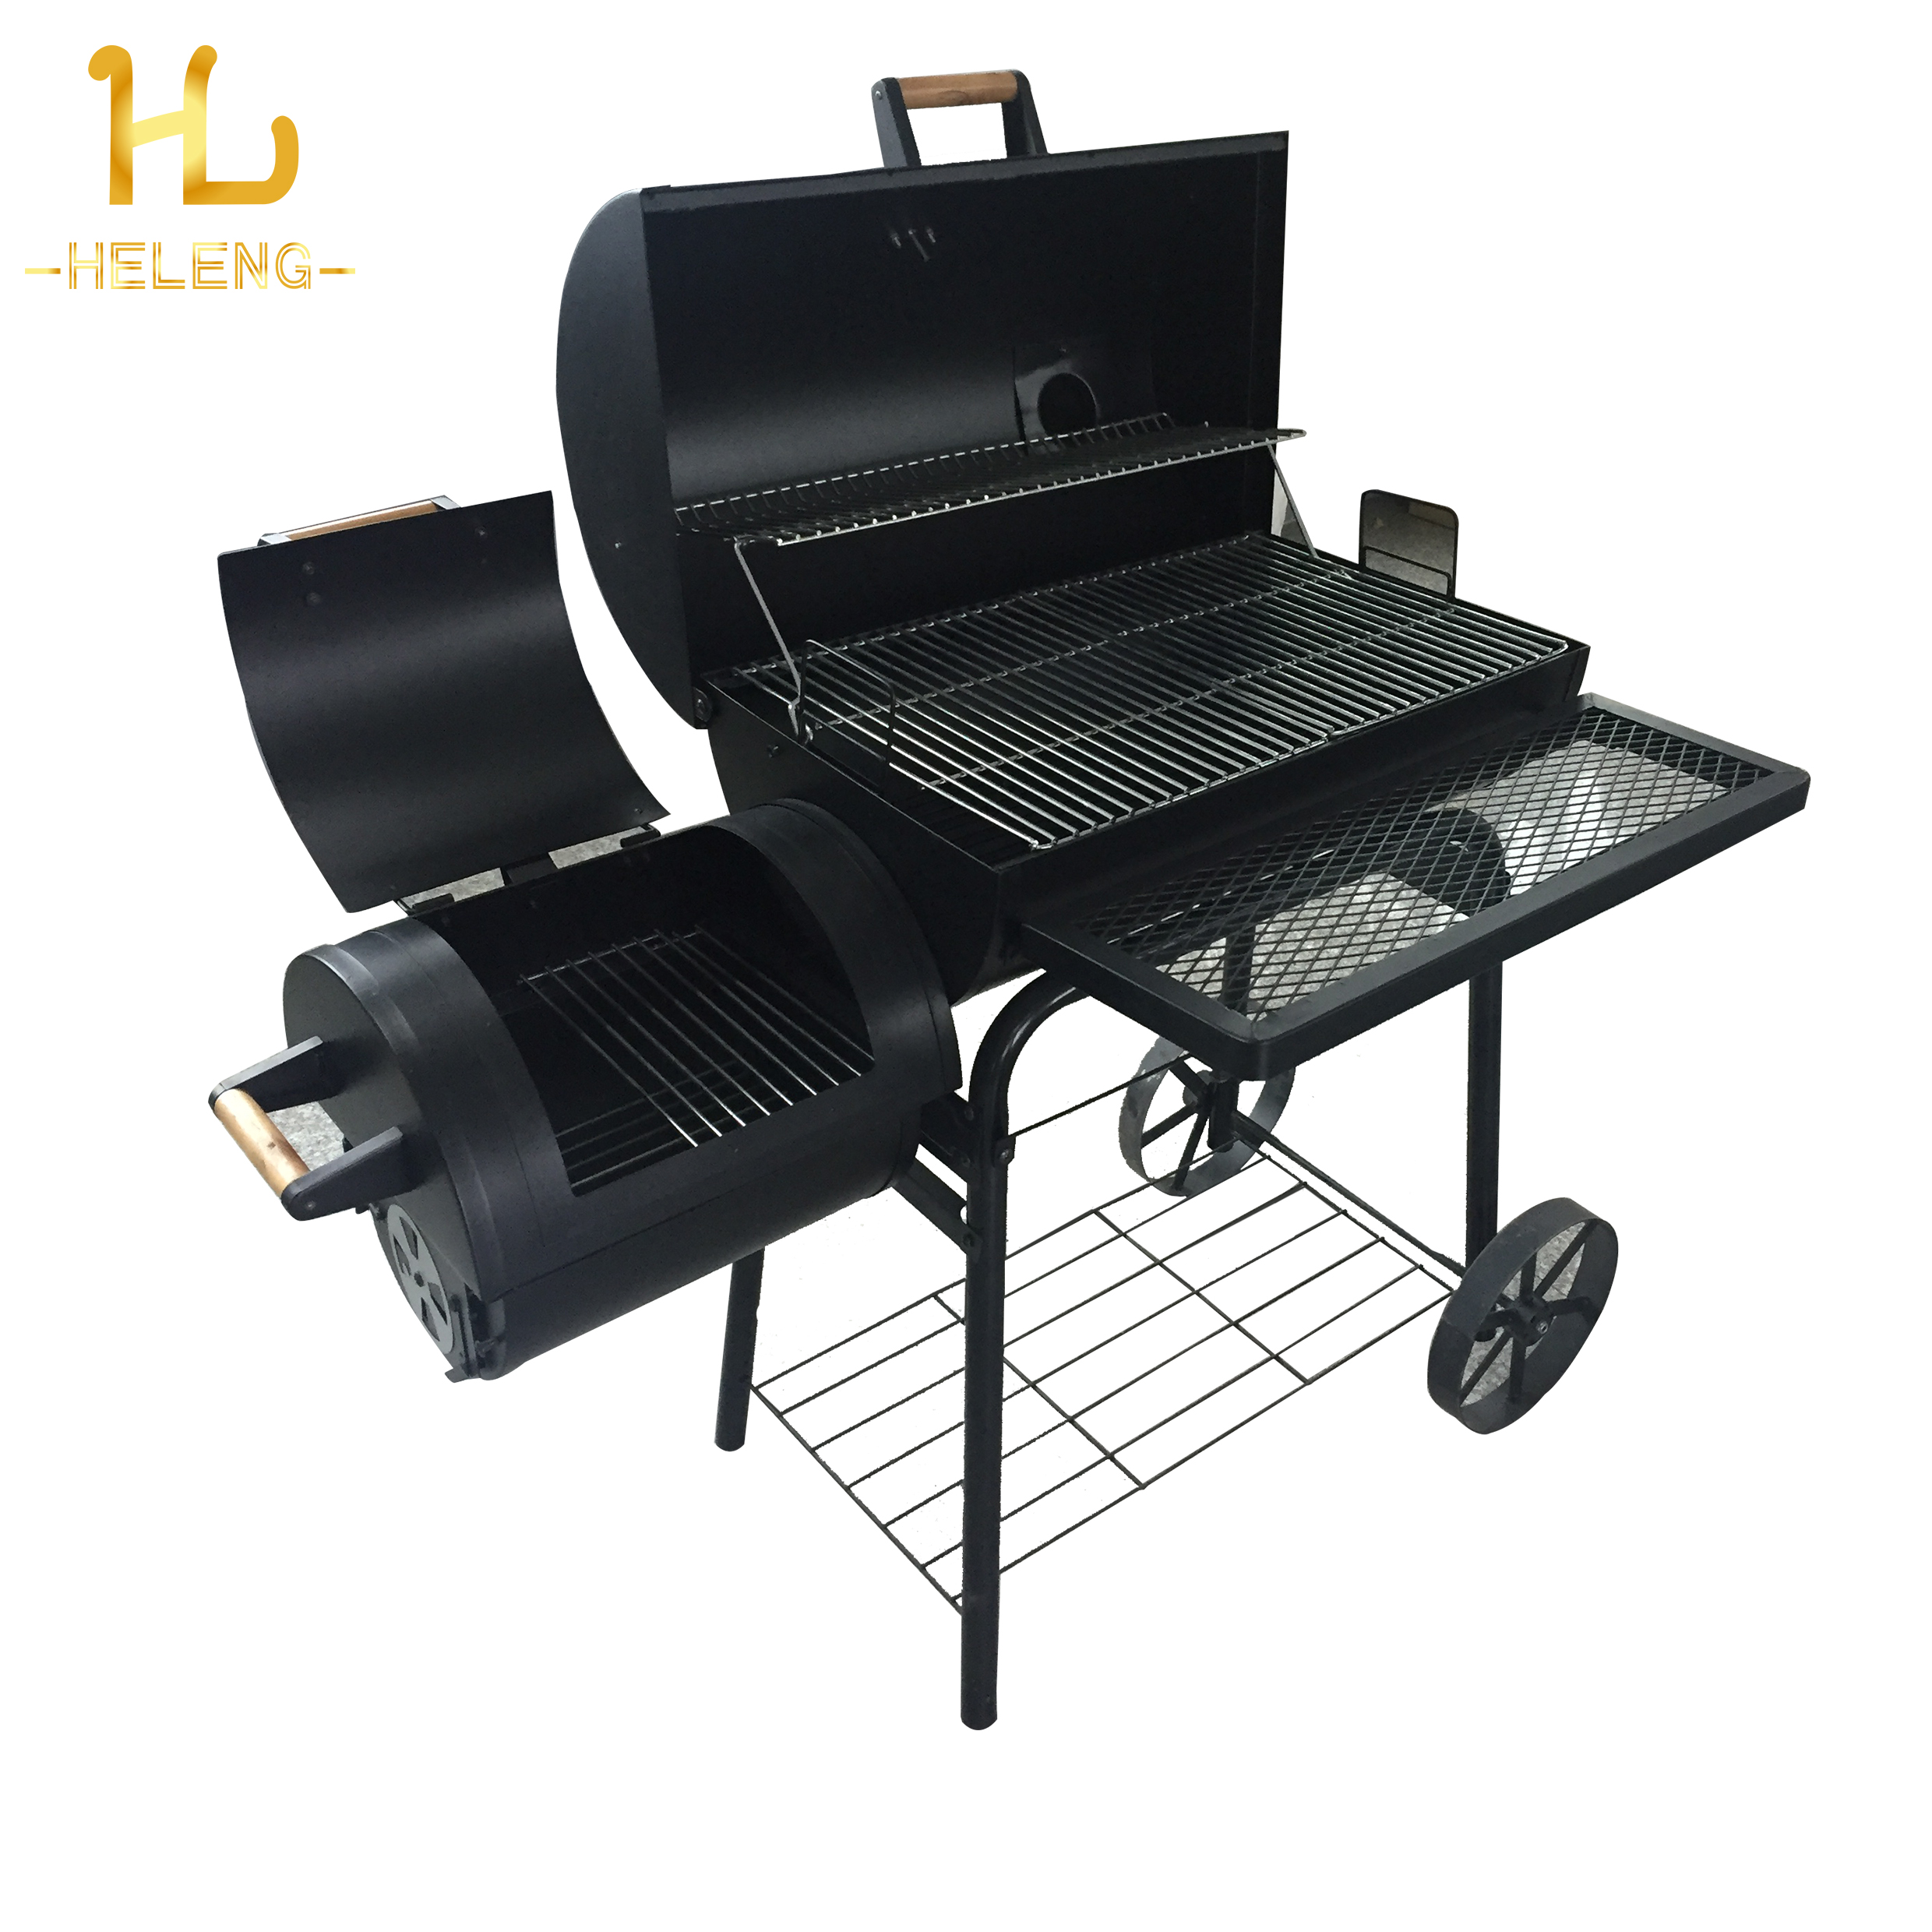 2019 Outdoor Heavy duty Commerciale Trolley Portatile Barile Offest Carbone di Legna BARBECUE Grill Fumatore